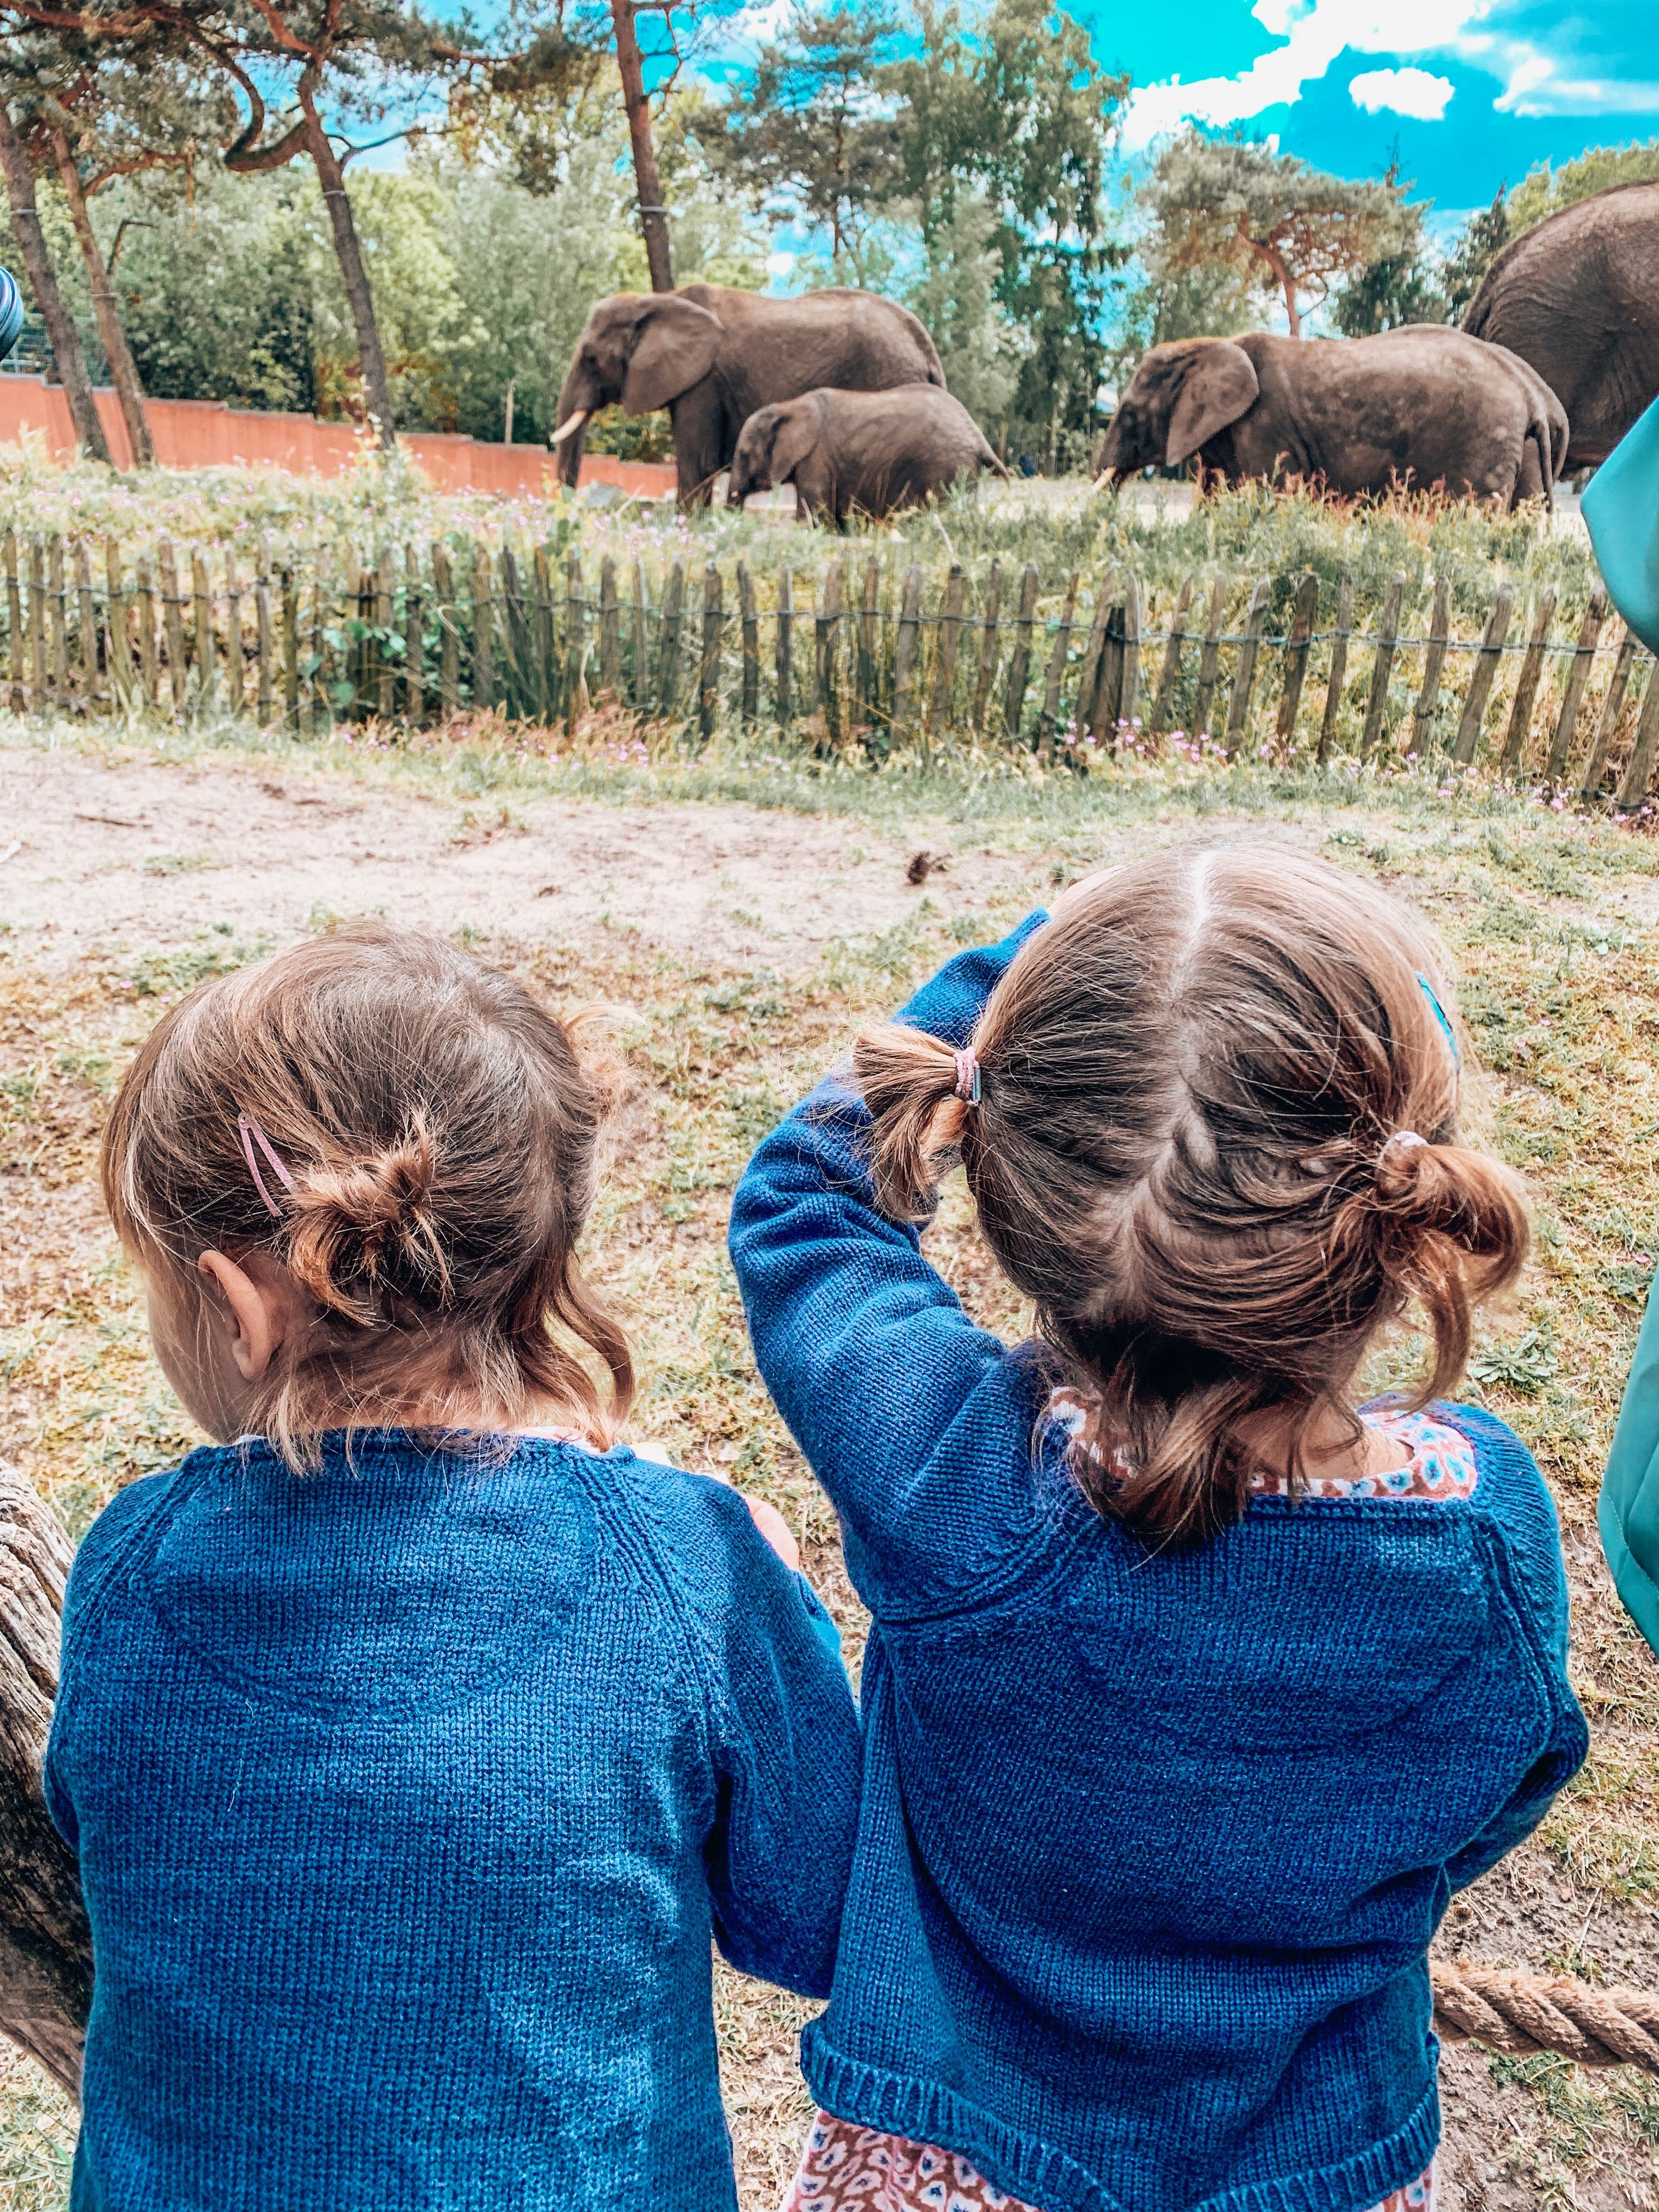 Twins watching the elephants at Beekse Bergen safari park. Places to visit in Holland